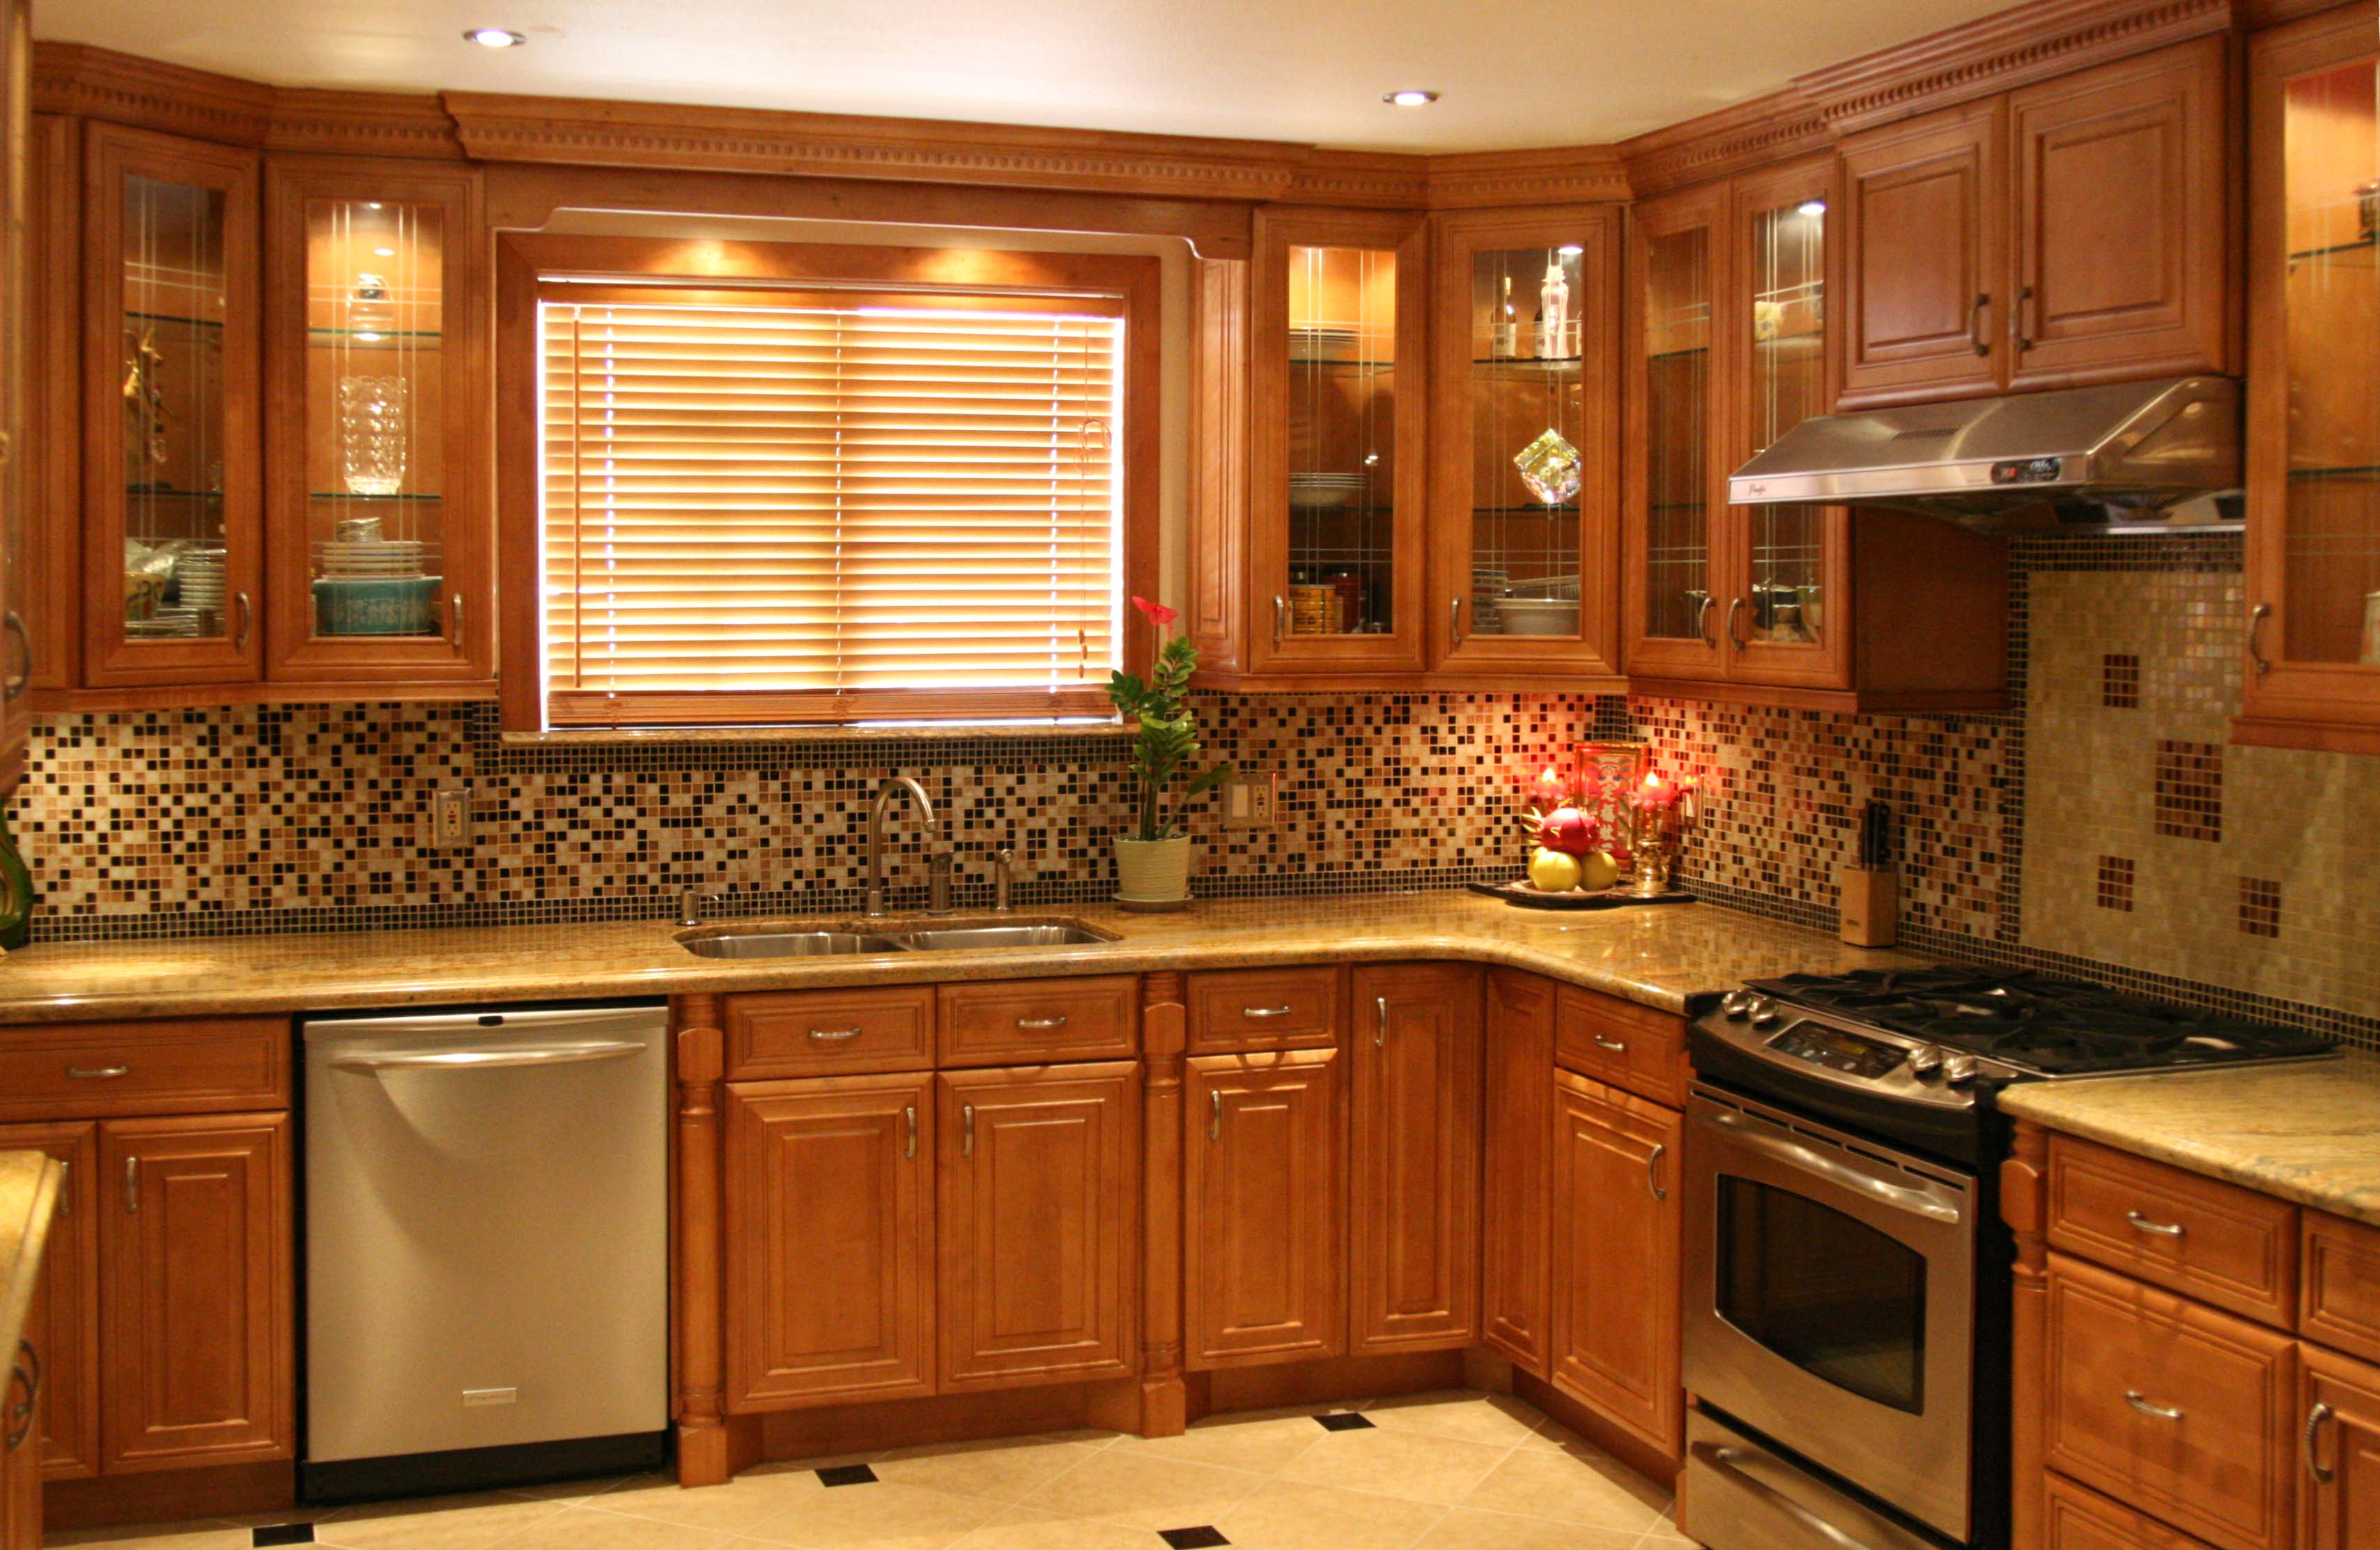 Remarkable Honey Oak Kitchen Cabinets with Backsplash 3416 x 2224 · 592 kB · jpeg